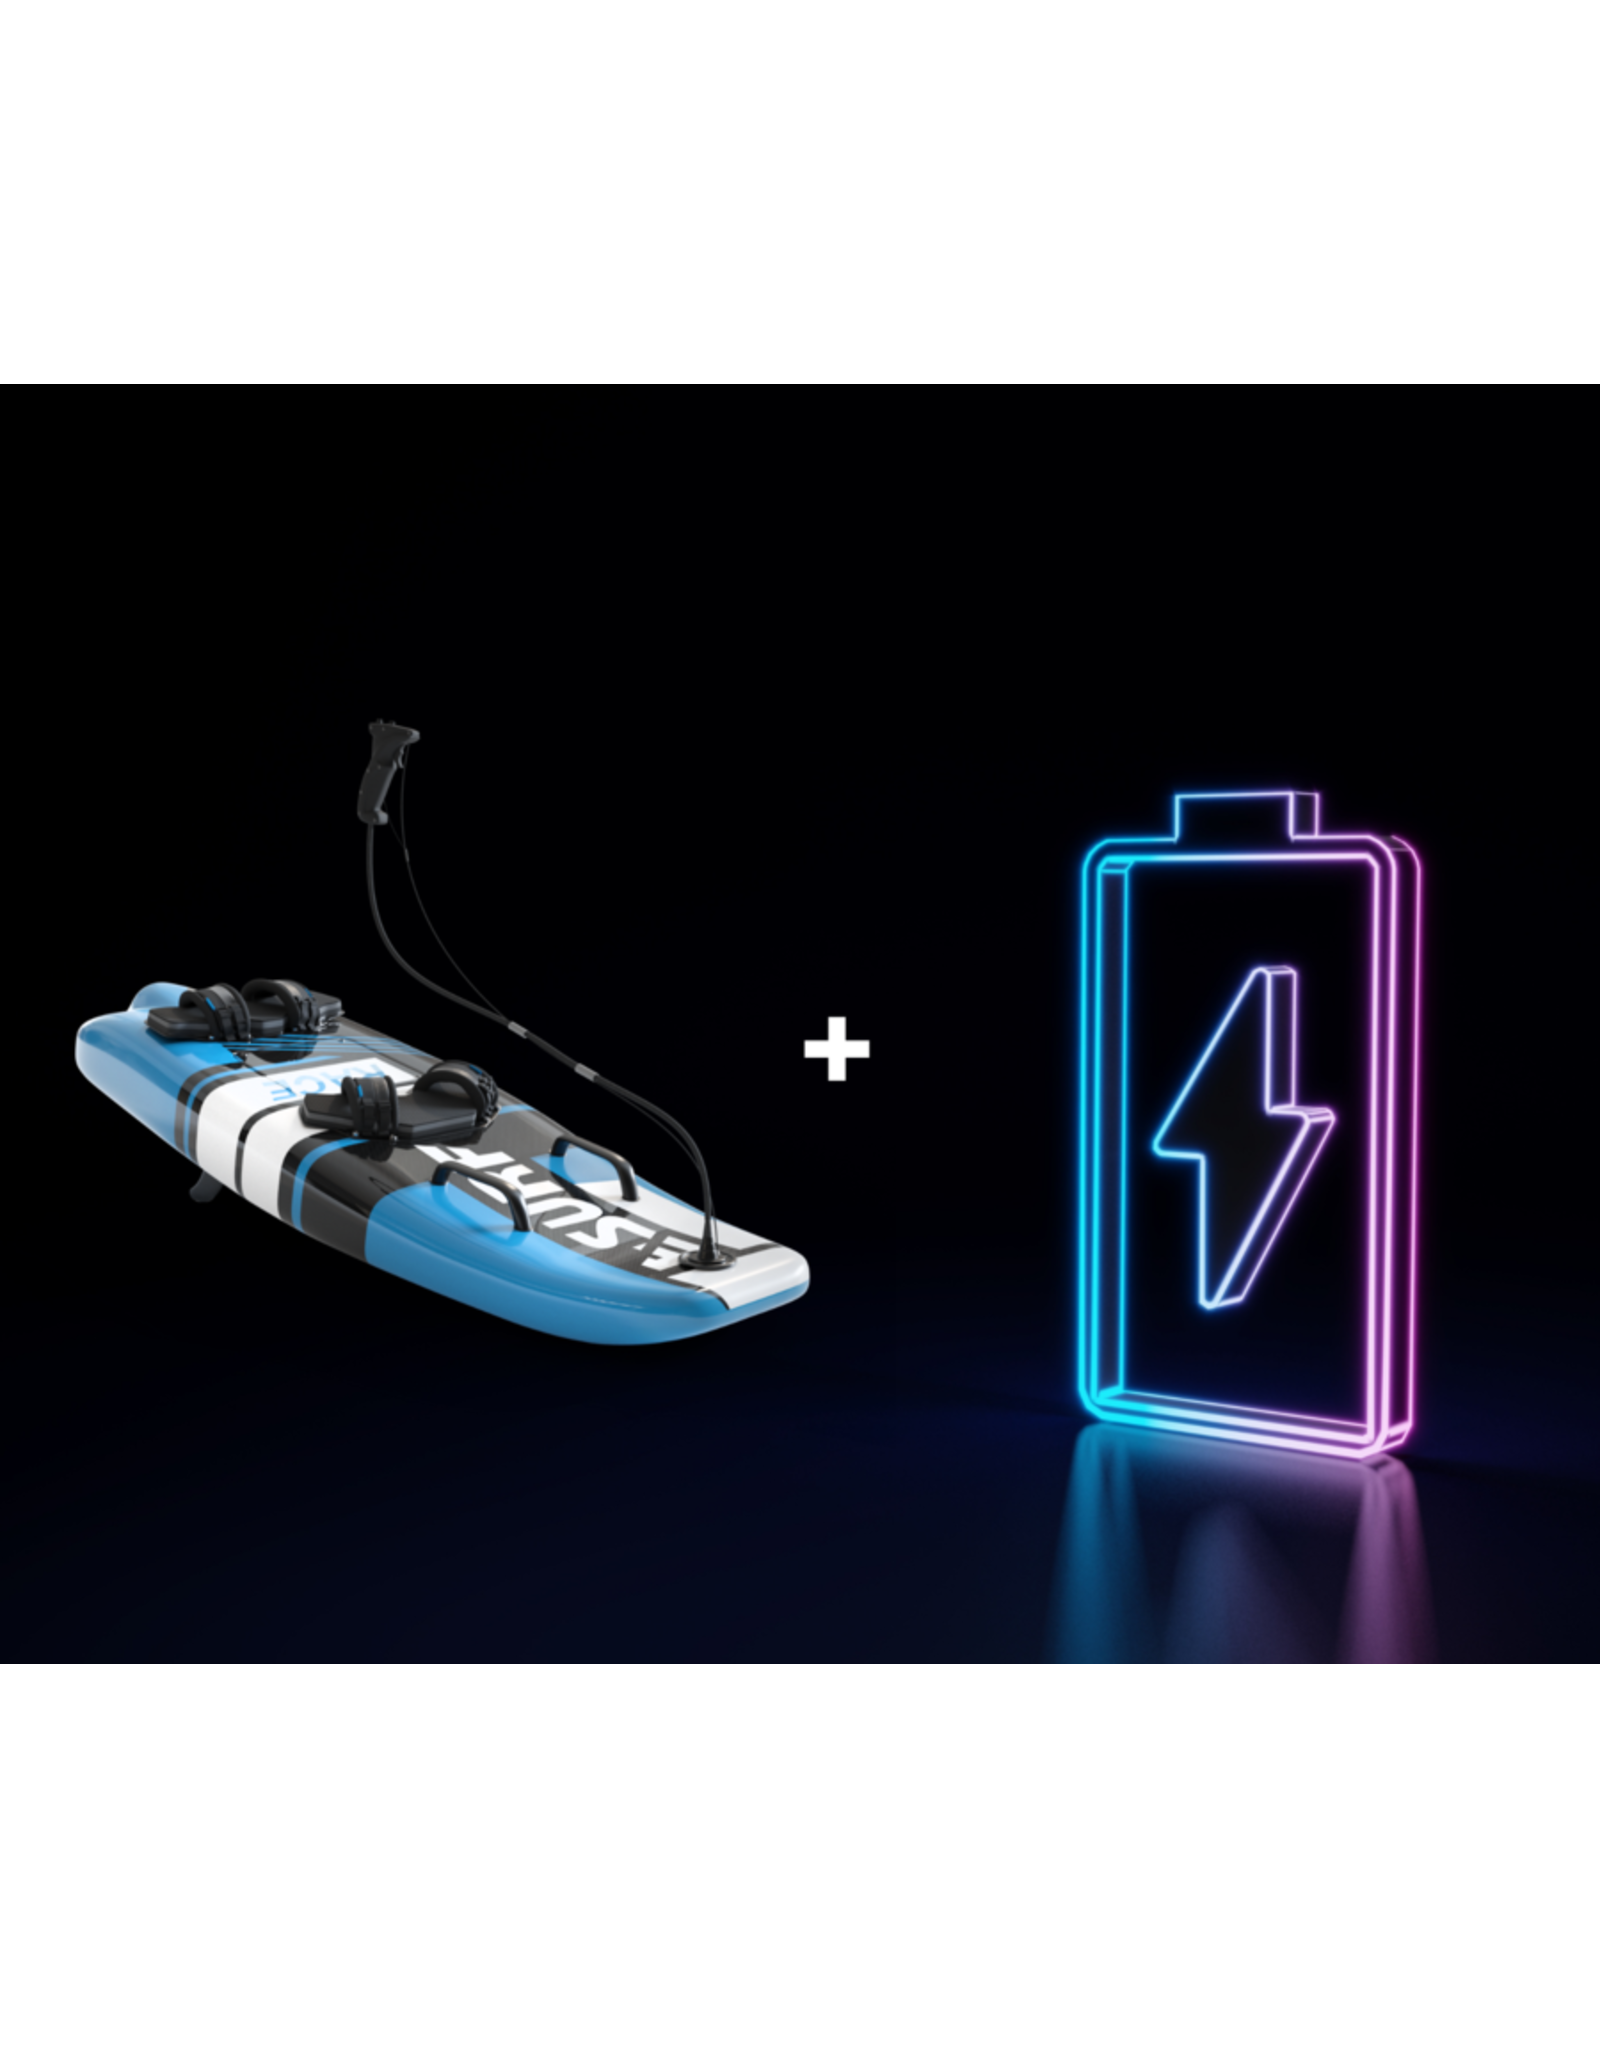 E-Surf Additional battery for E-surf race electric surfboard